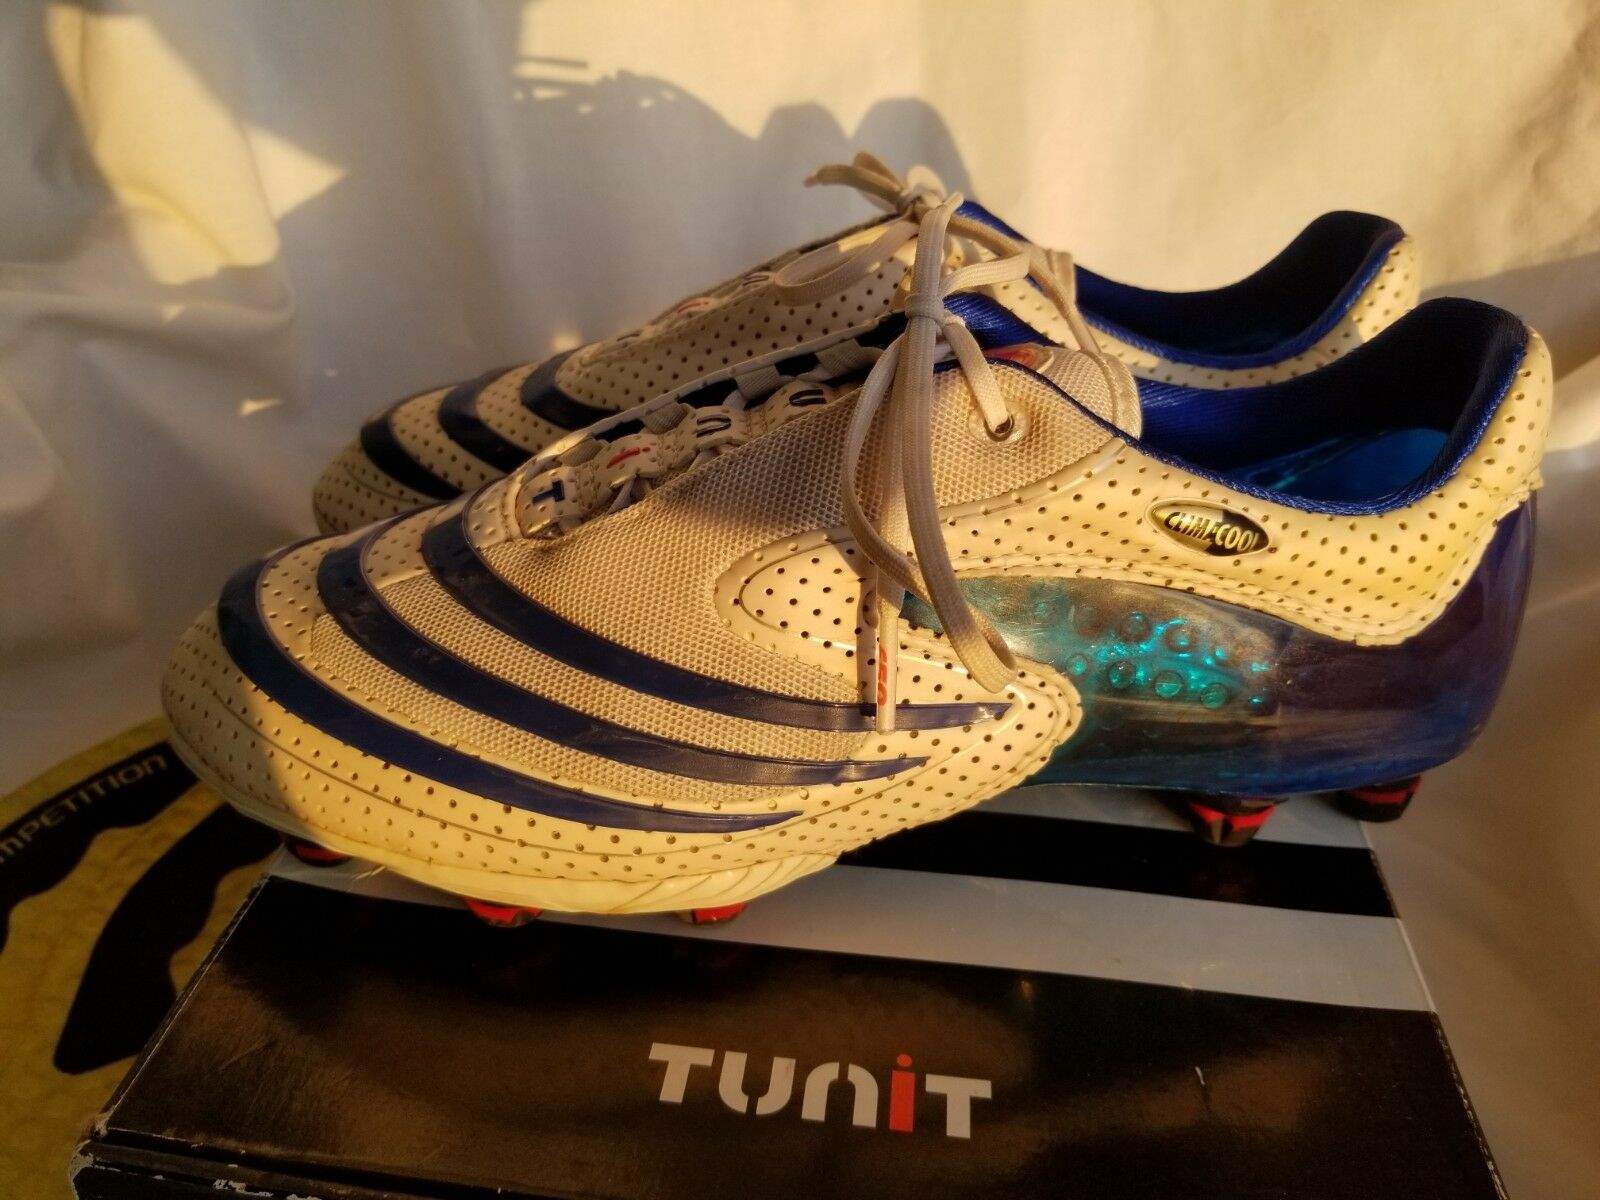 Adidas F50 Tunit Clima Cool Prossoator Pulse Soccer F50 scarpe Cleats US 8.5